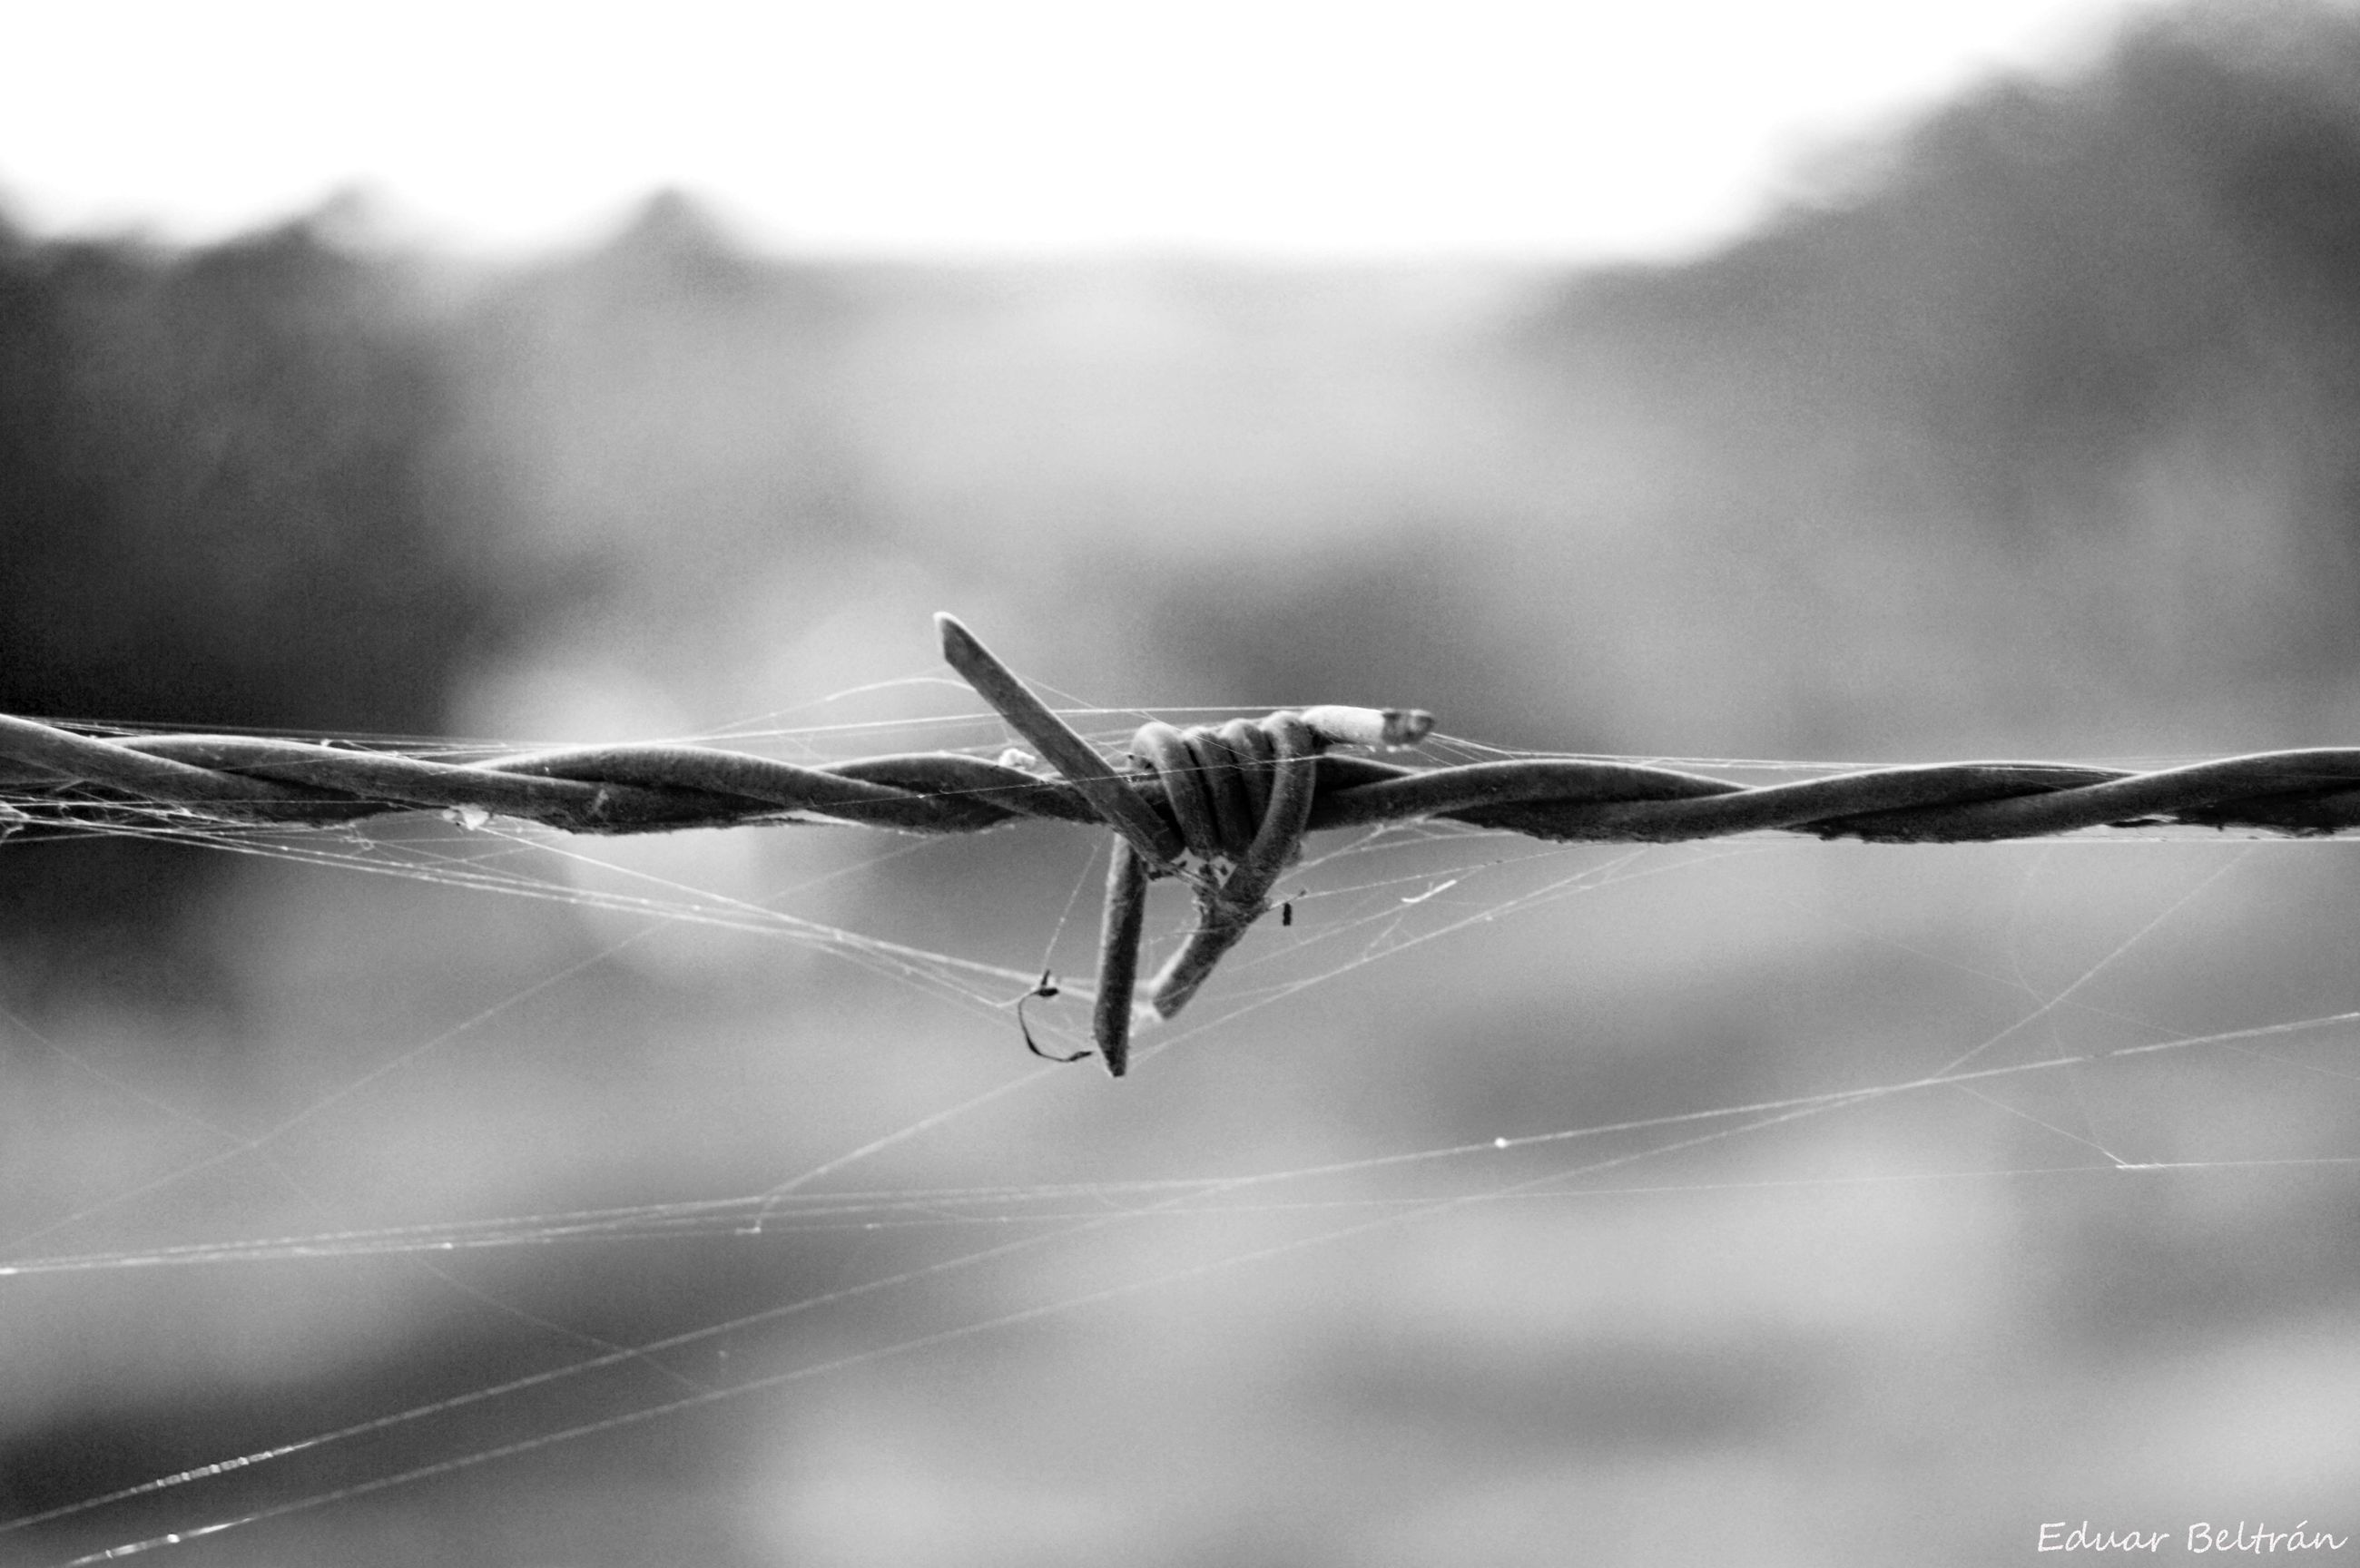 focus on foreground, close-up, barbed wire, nature, selective focus, outdoors, day, twig, plant, sharp, no people, tranquility, beauty in nature, sky, detail